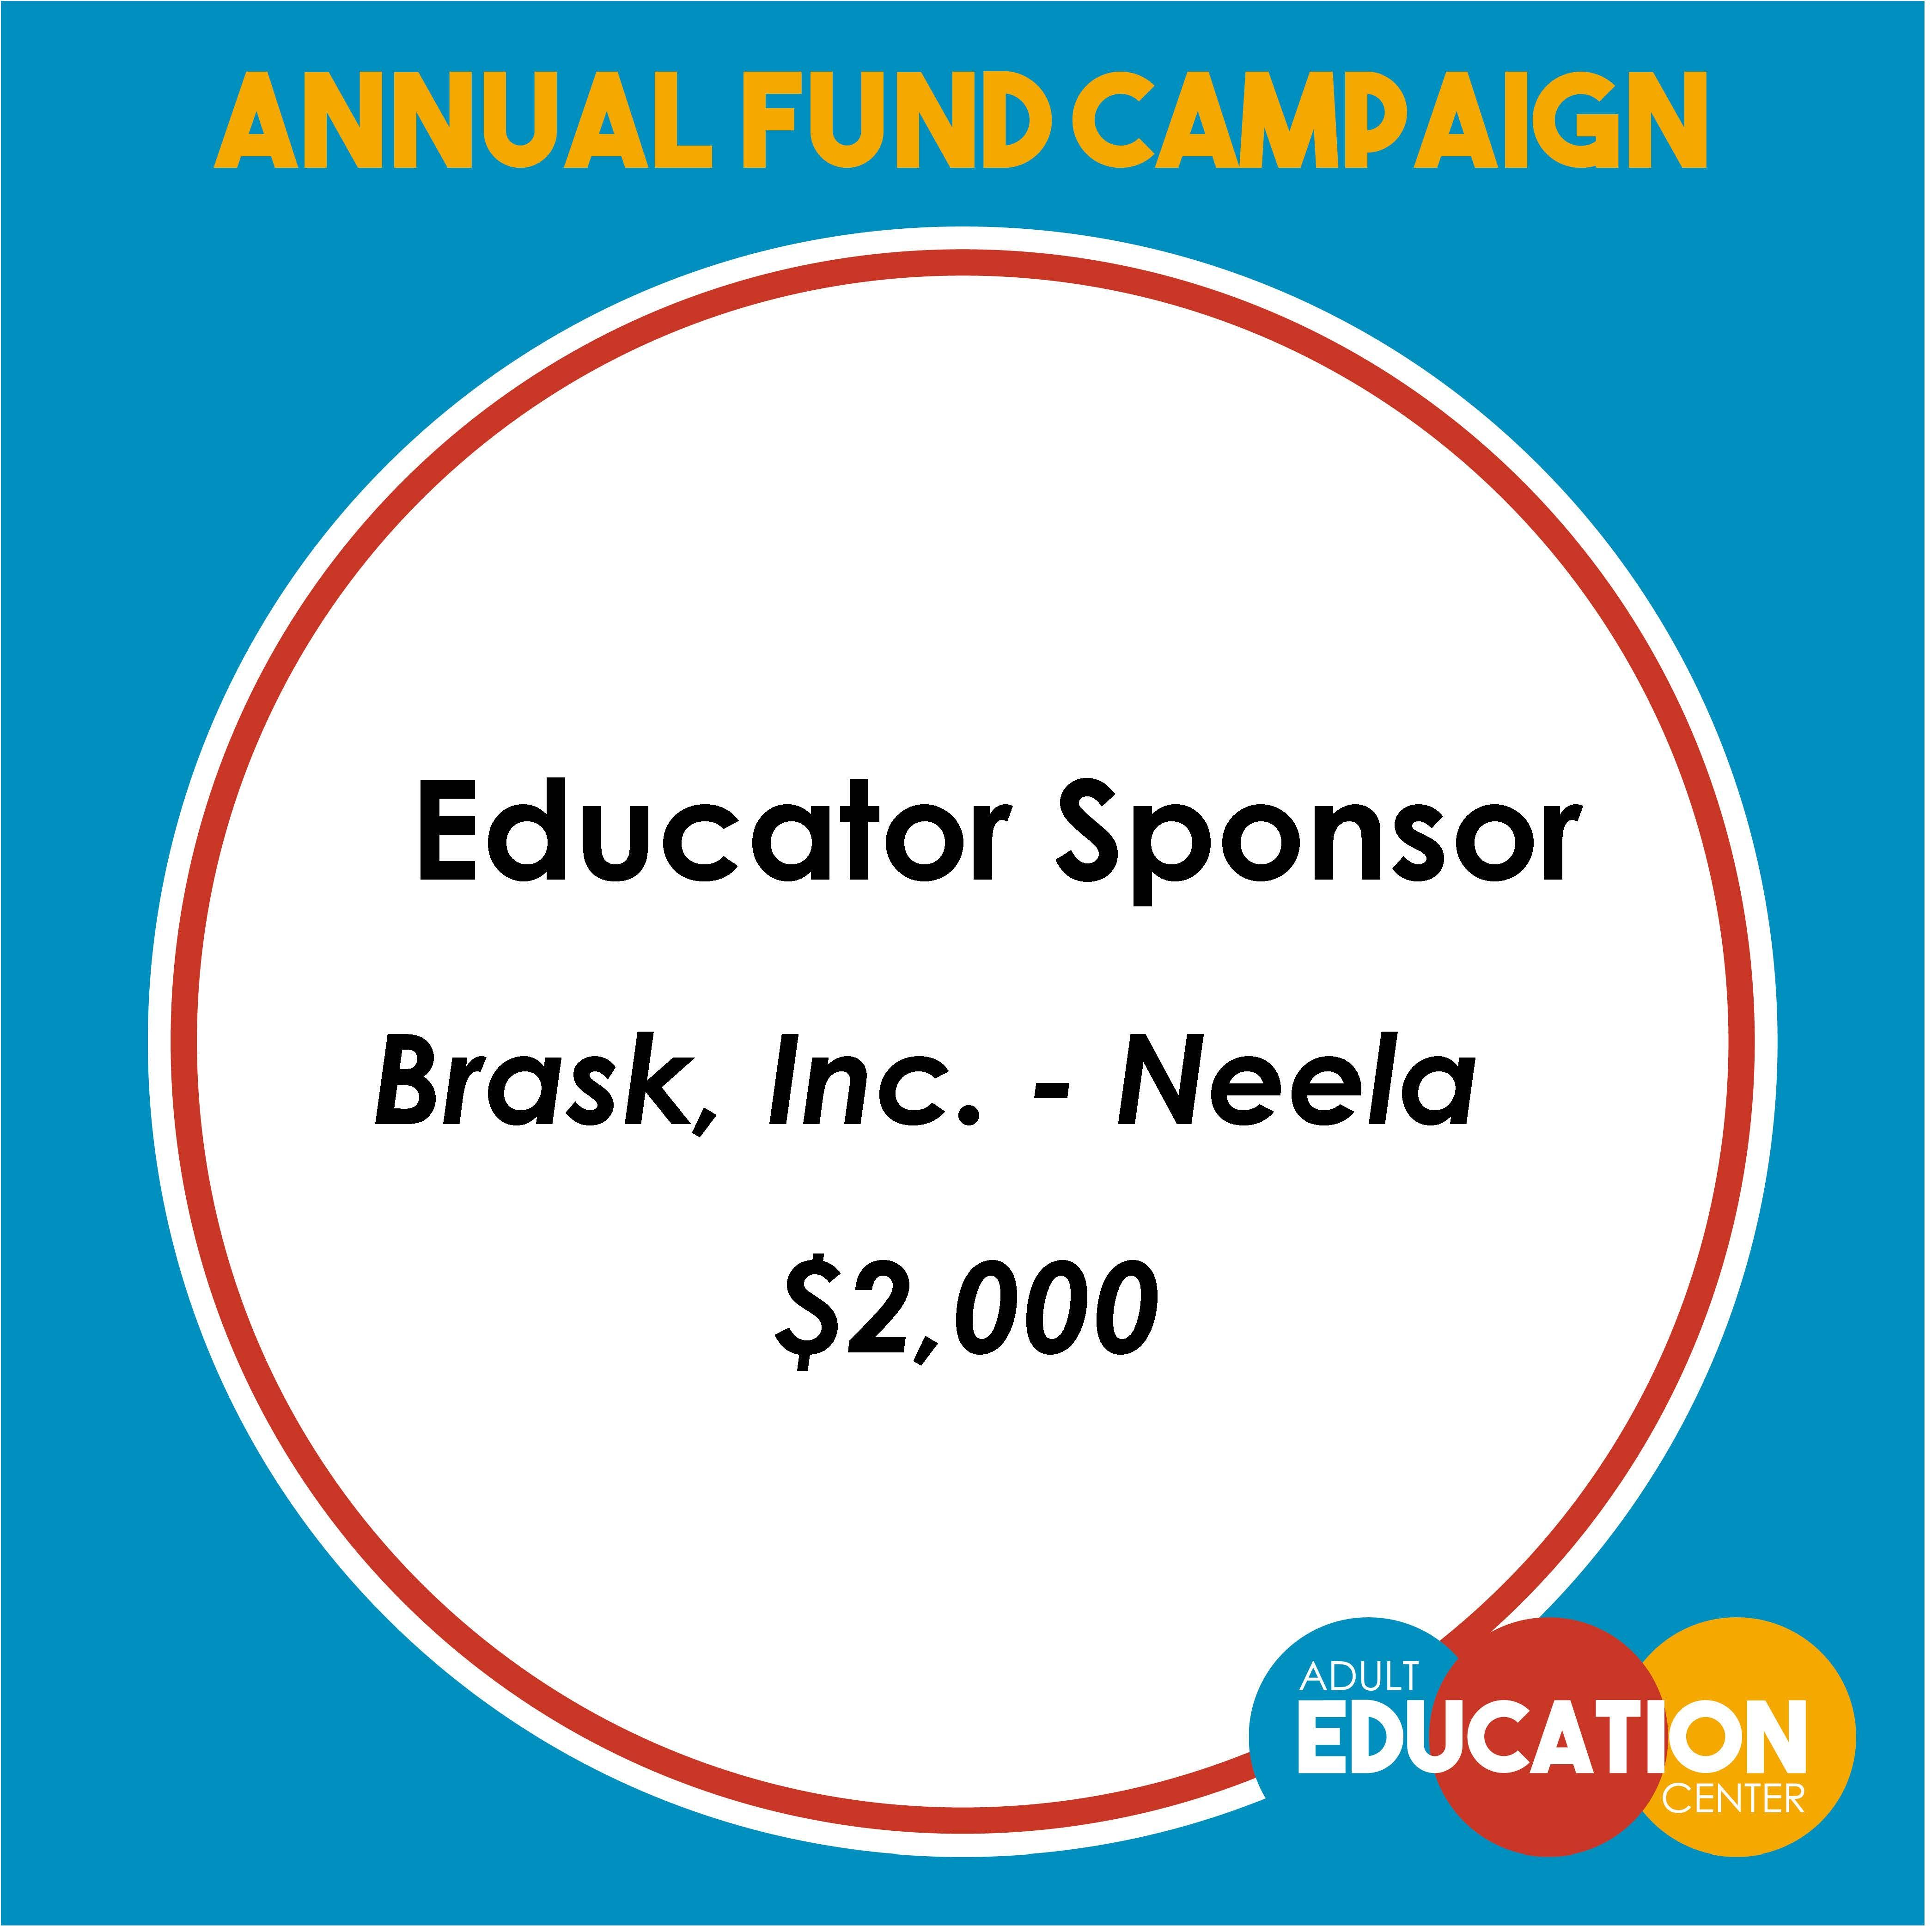 Brask, Inc. - Neela Educator Sponsor - $1,000